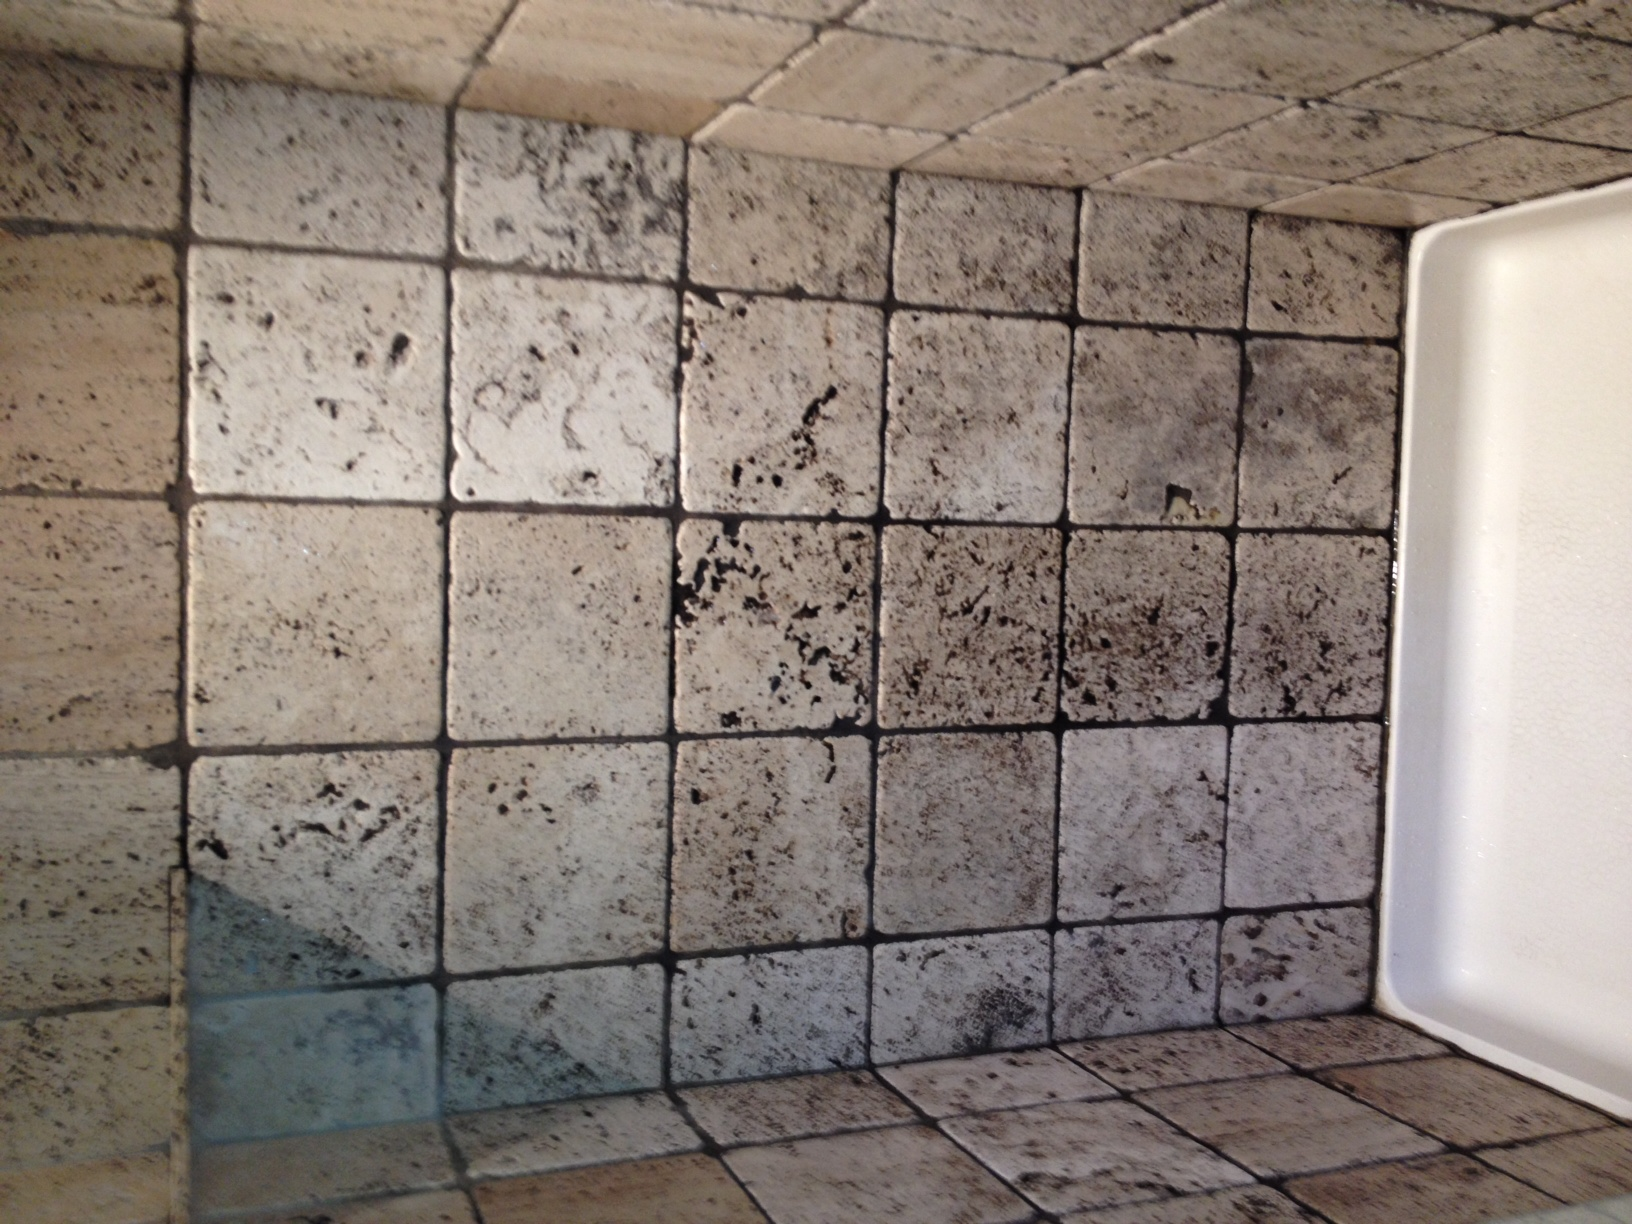 how to clean shower grout mold